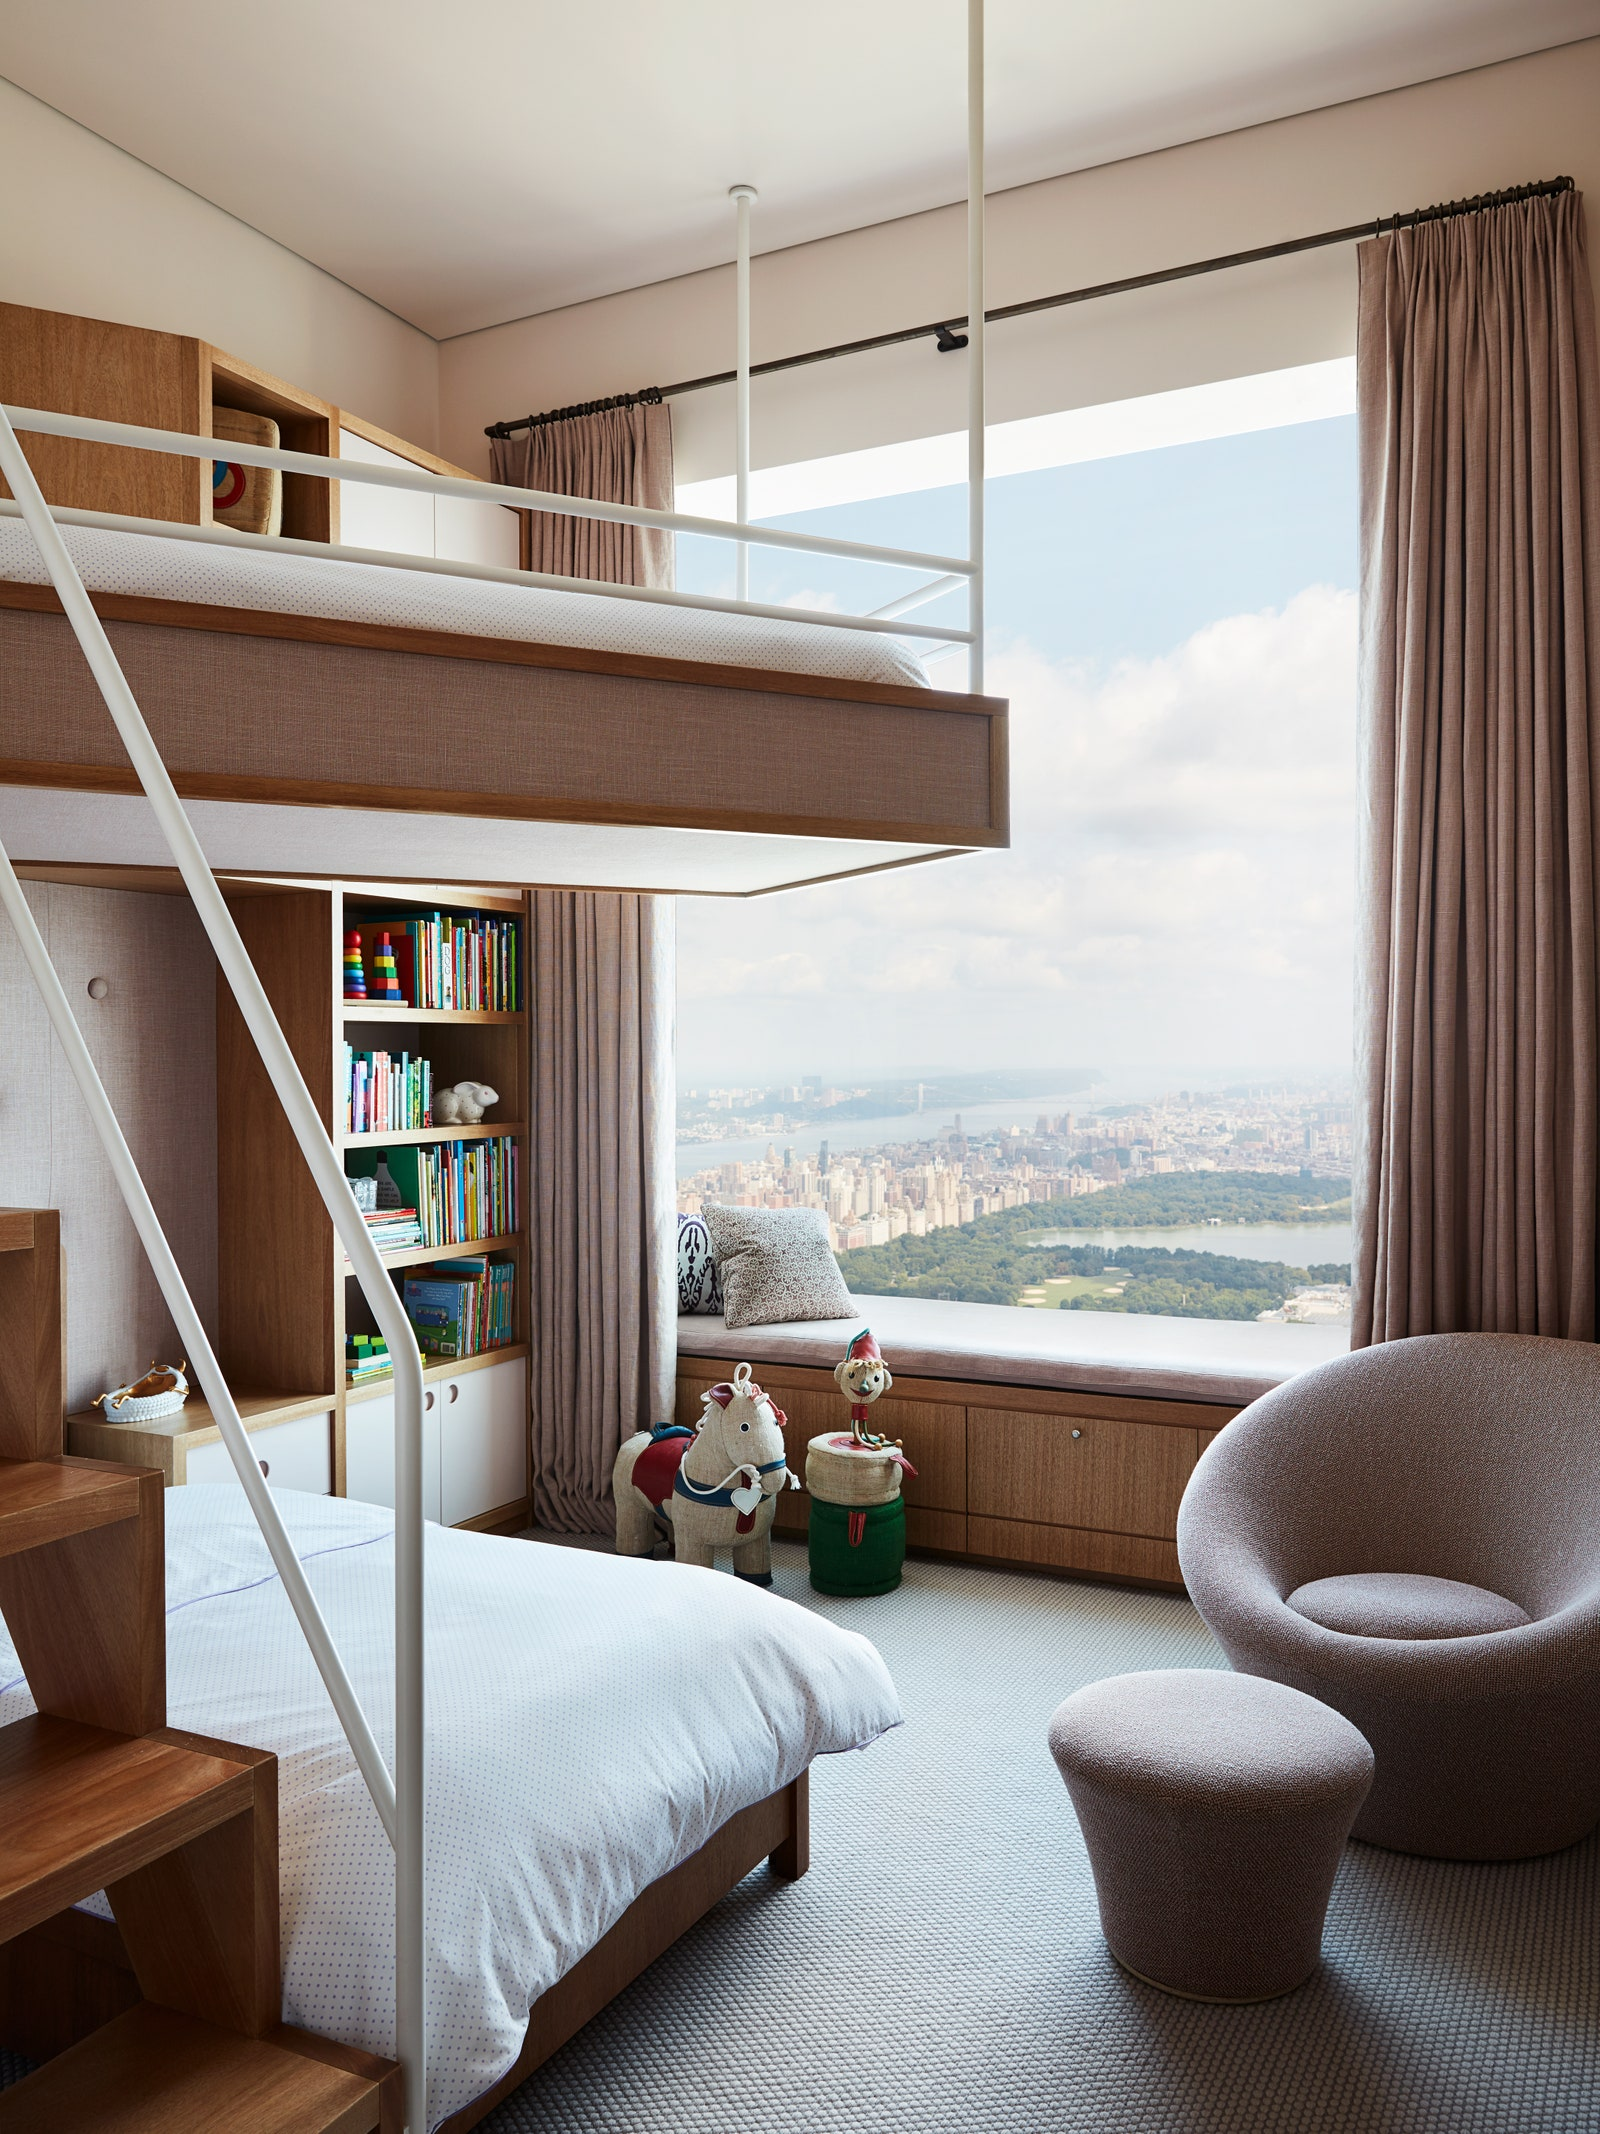 Image may contain Furniture Interior Design Indoors Bed Room Bedroom Housing Building Wood and Living Room